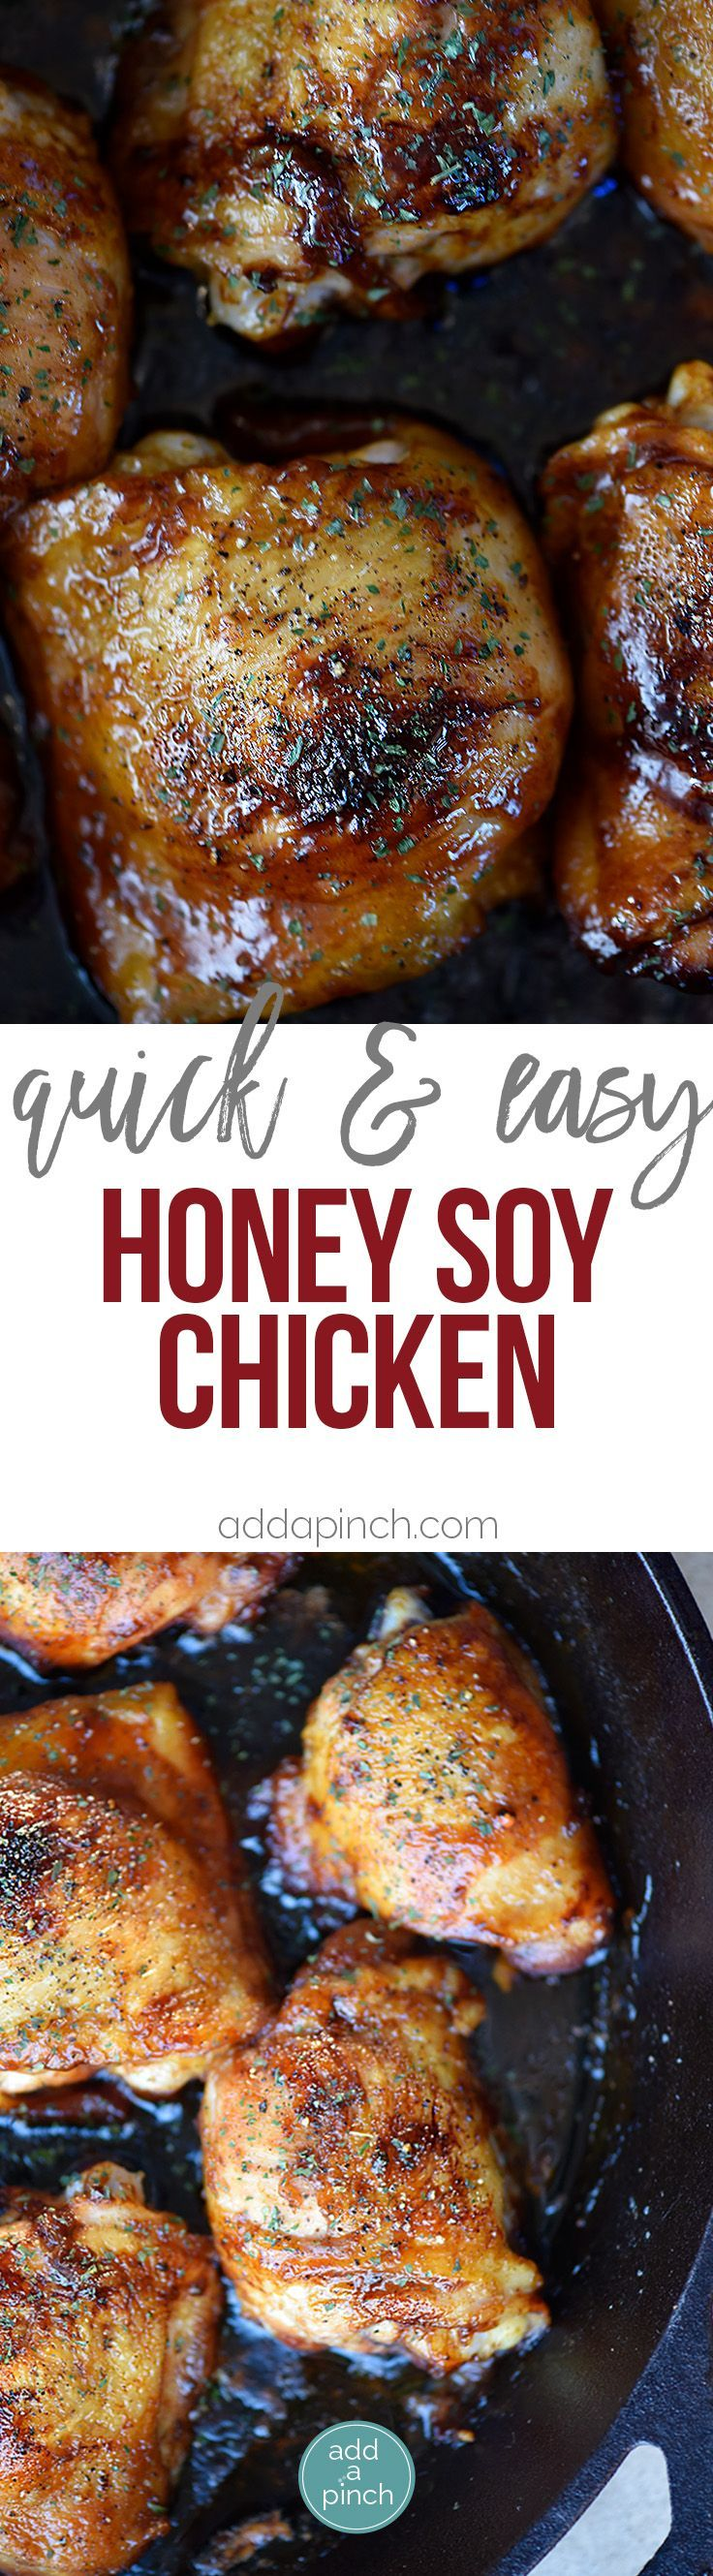 Honey Soy Chicken Recipe - This honey soy chicken recipe comes together for a quick, easy and delicious meal! Use with all cuts of chicken! // http://addapinch.com